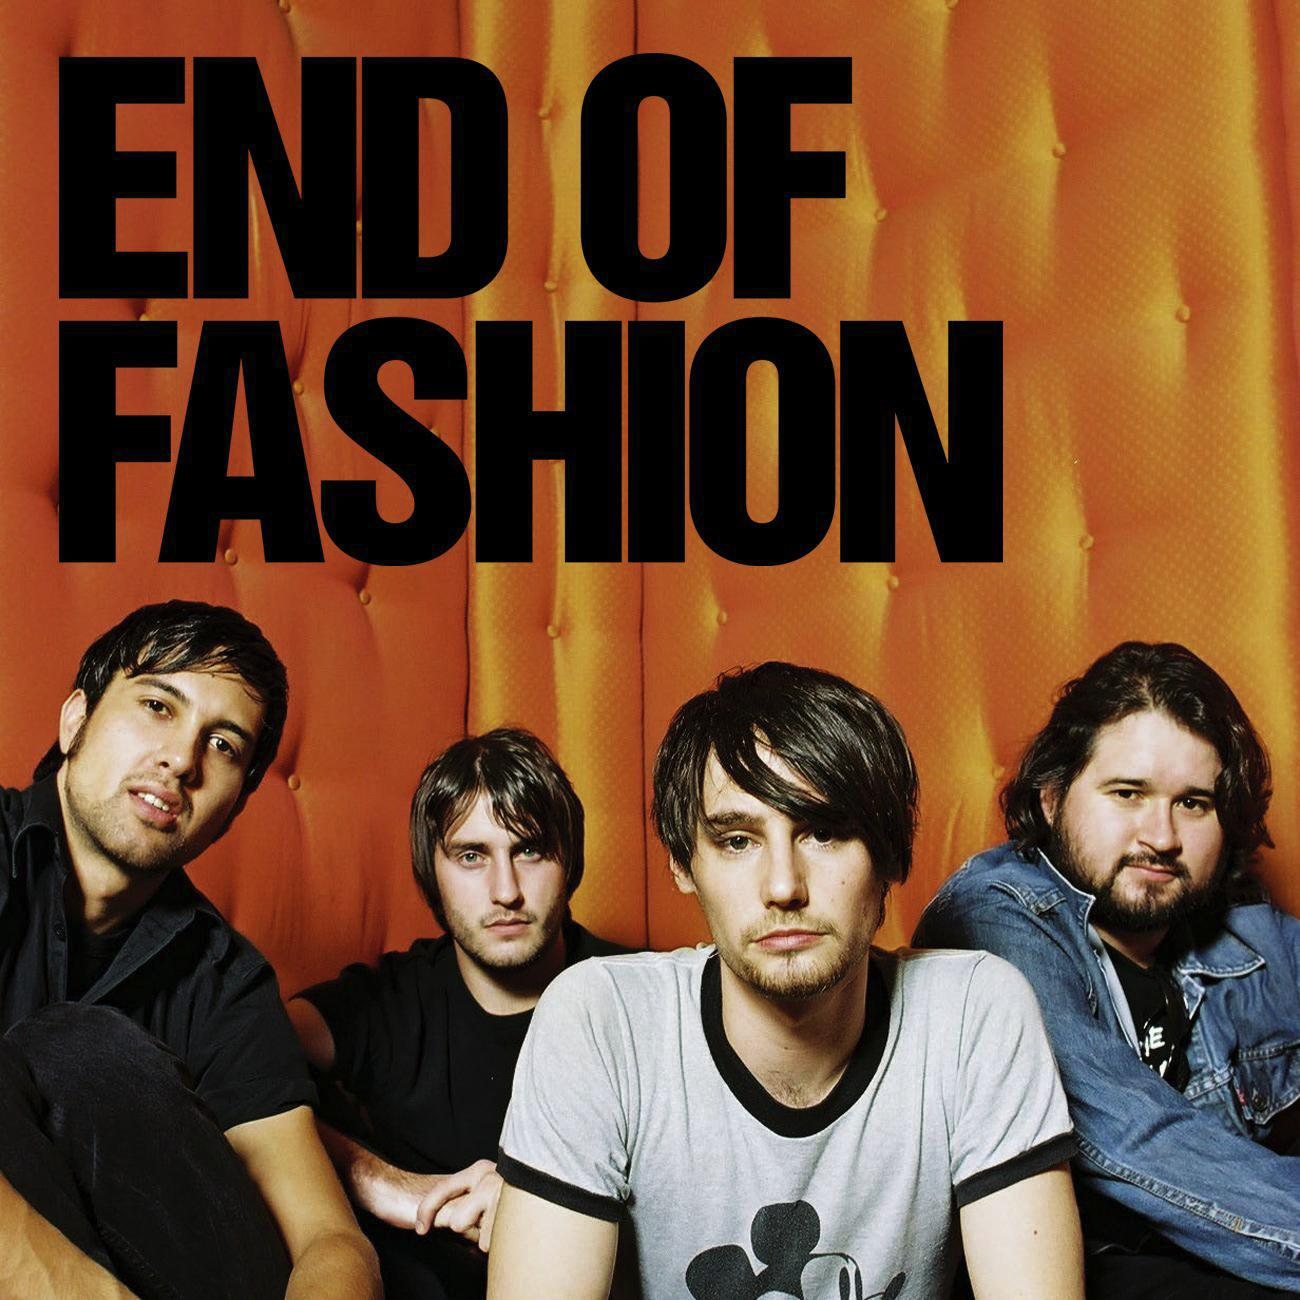 Karen O - Wikipedia End of fashion o yeah download mp3